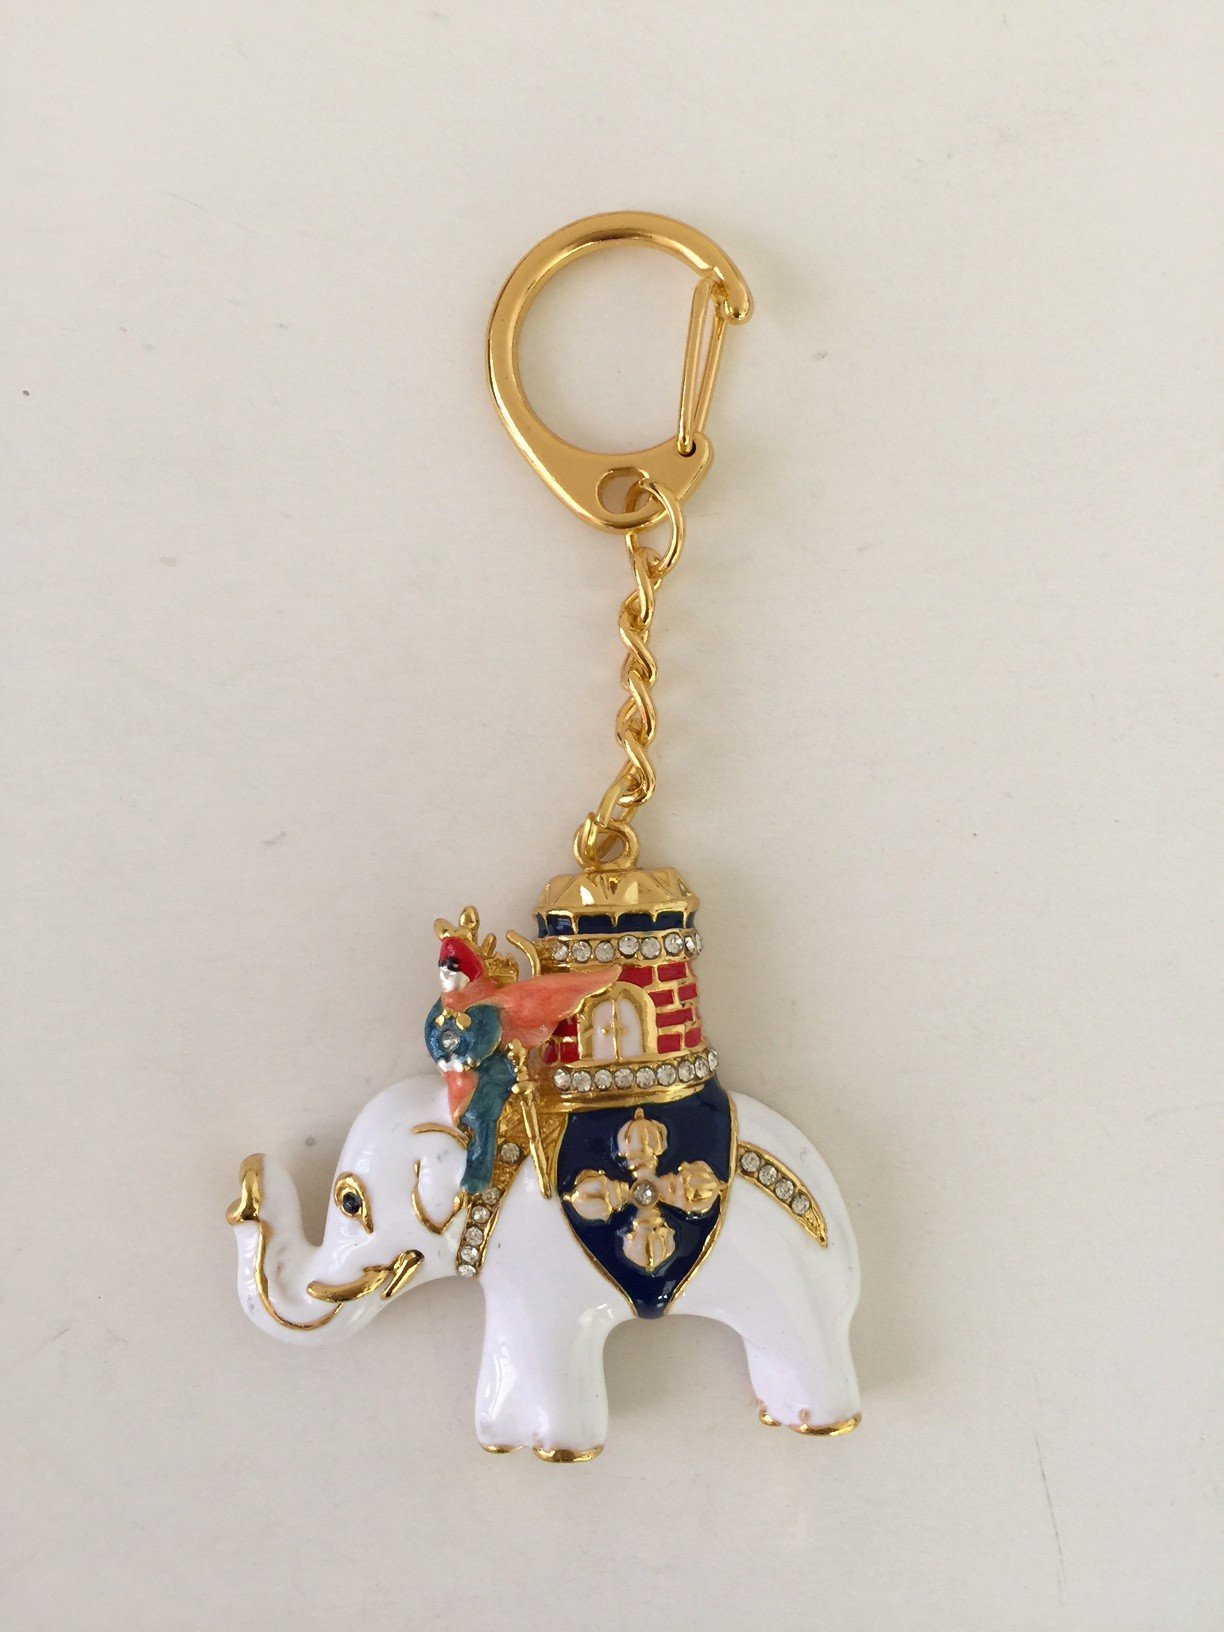 Feng Shui Power Elephant with Warrior Keychain Amulet USA Seller by Mylucky (Image #1)